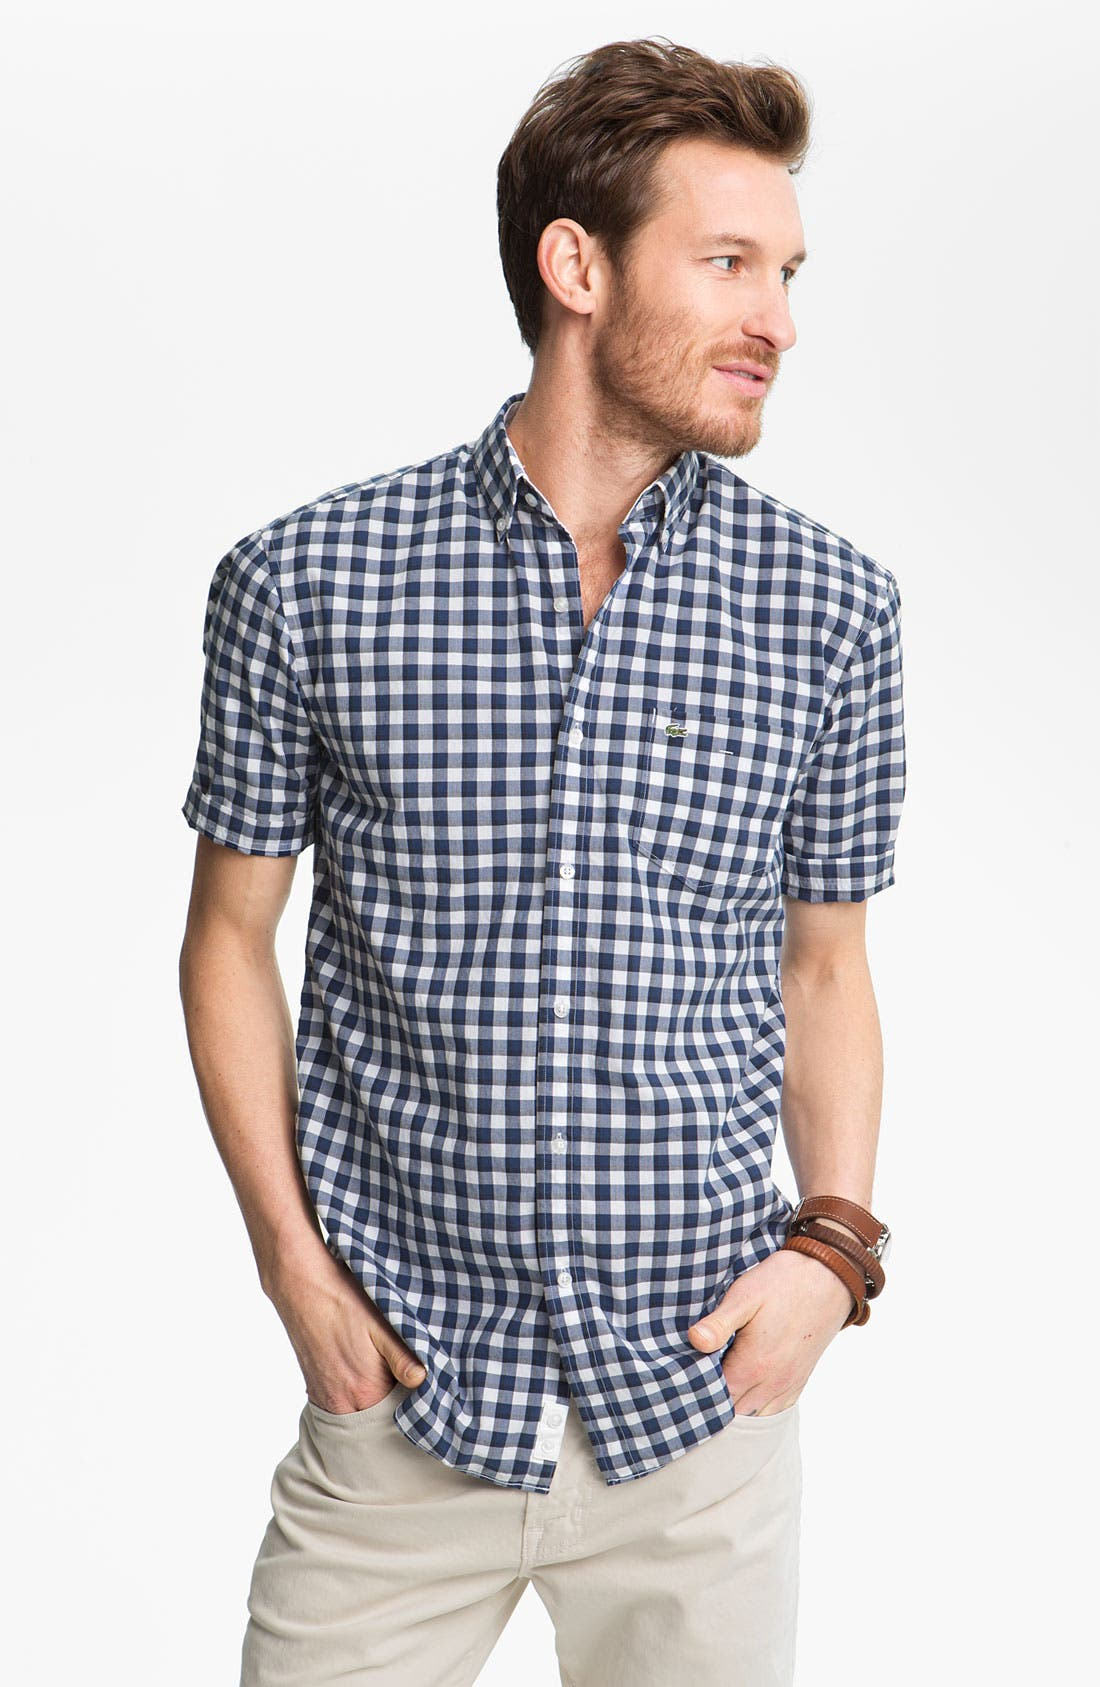 Alternate Image 1 Selected - Lacoste Gingham Check Woven Shirt